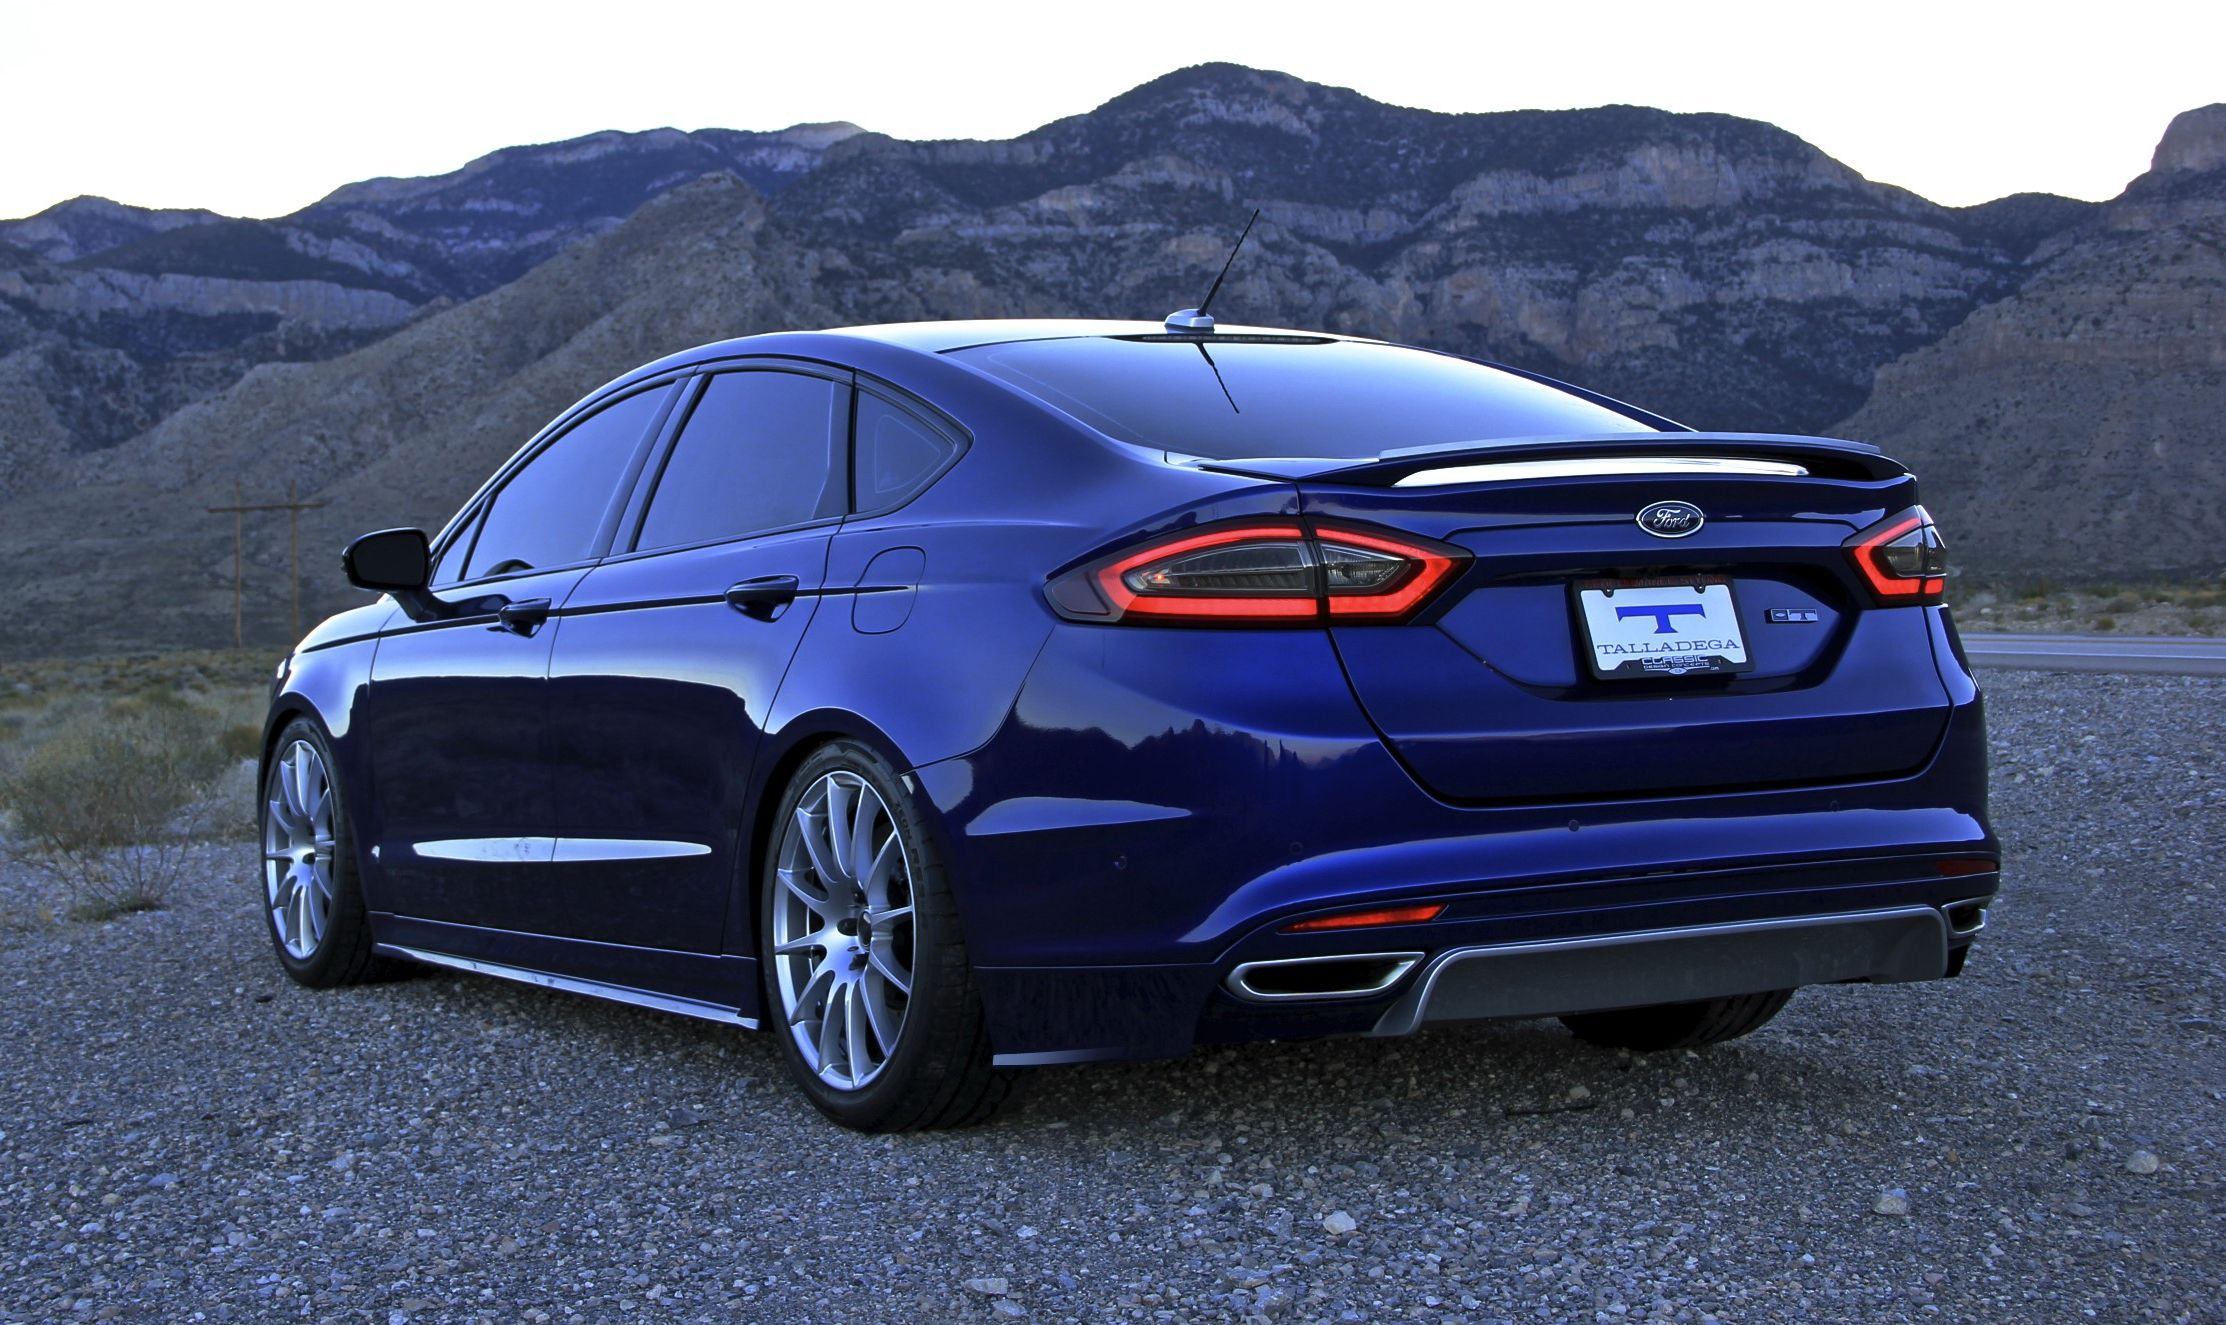 ford fusion wheel spacers | Clasic Design Concepts Sick 2013 Fusion...